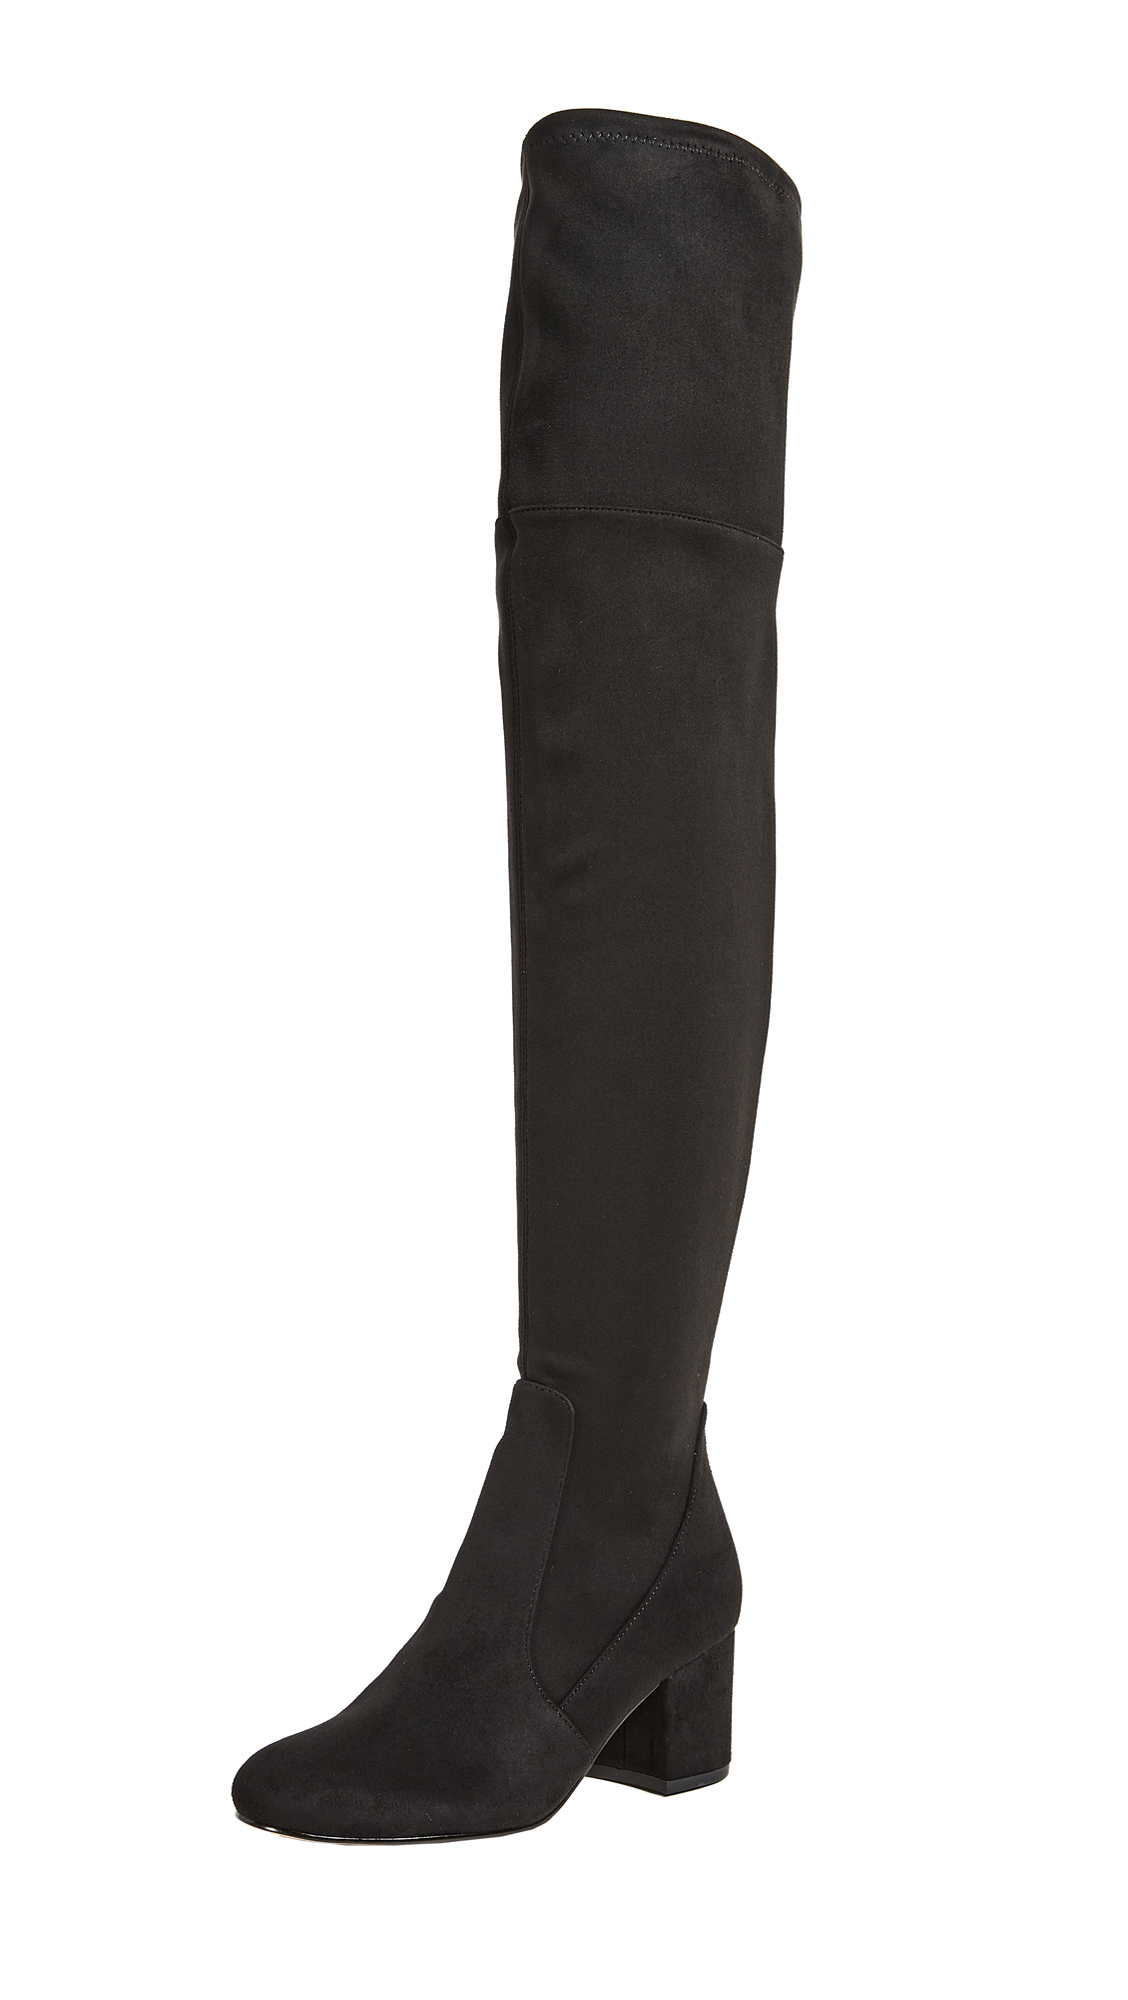 Sam Edelman Varona Thigh High Boots - Black